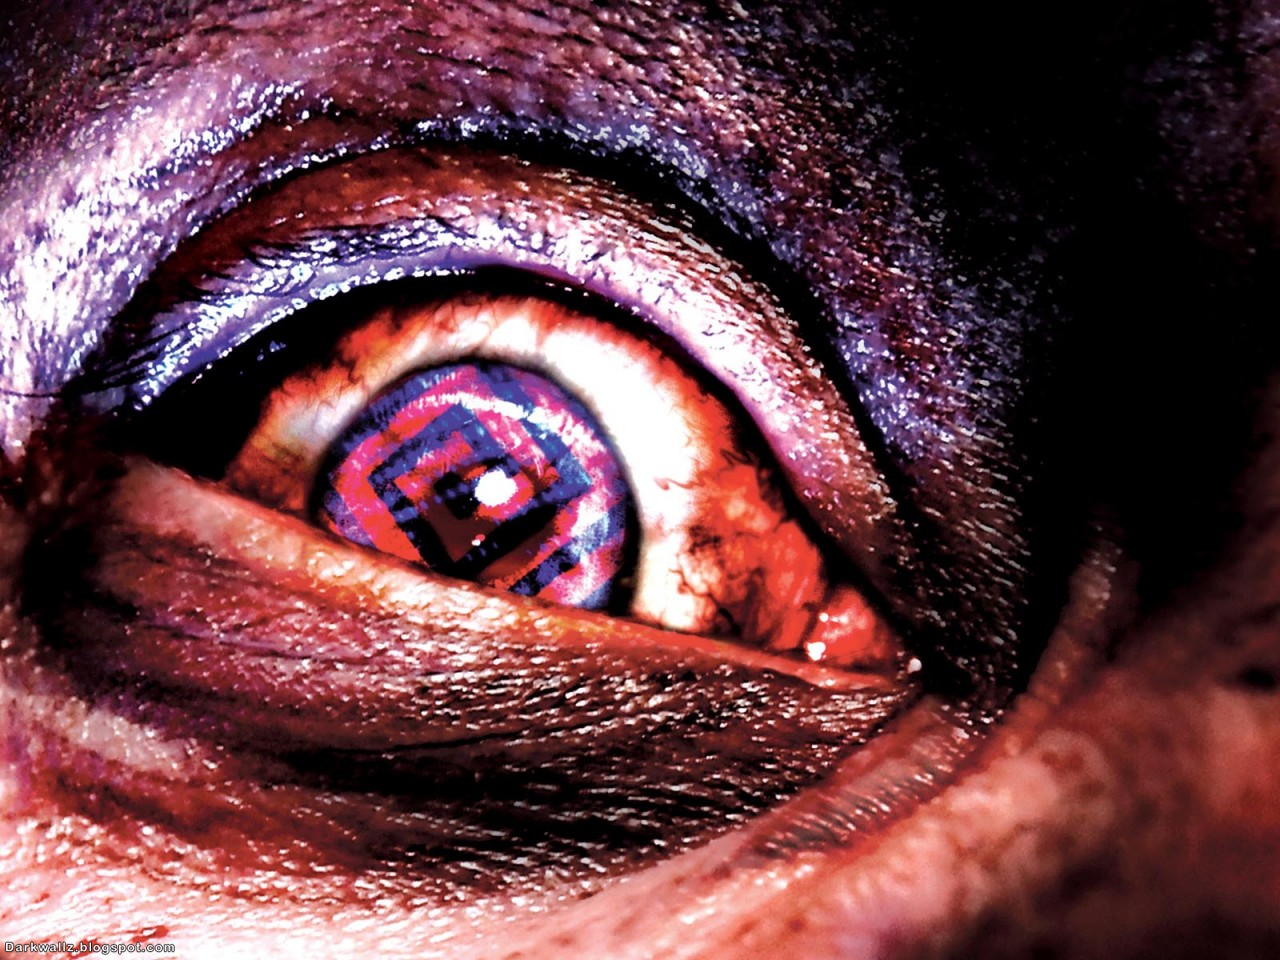 Scary Eyes Wallpapers  73| Dark Wallpaper Download